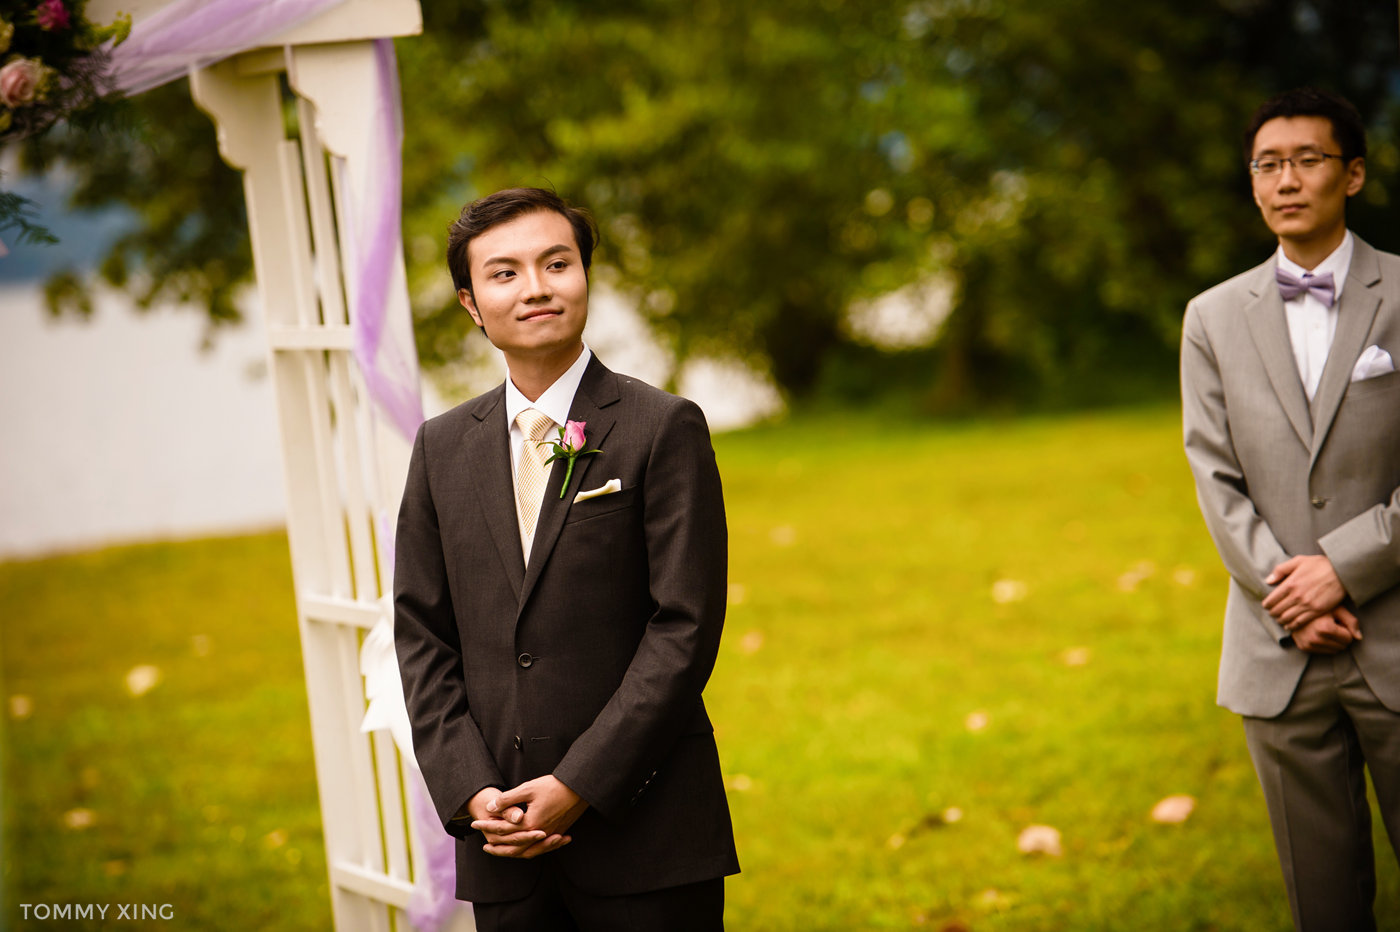 Seattle Wedding and pre wedding Los Angeles Tommy Xing Photography 西雅图洛杉矶旧金山婚礼婚纱照摄影师 069.jpg